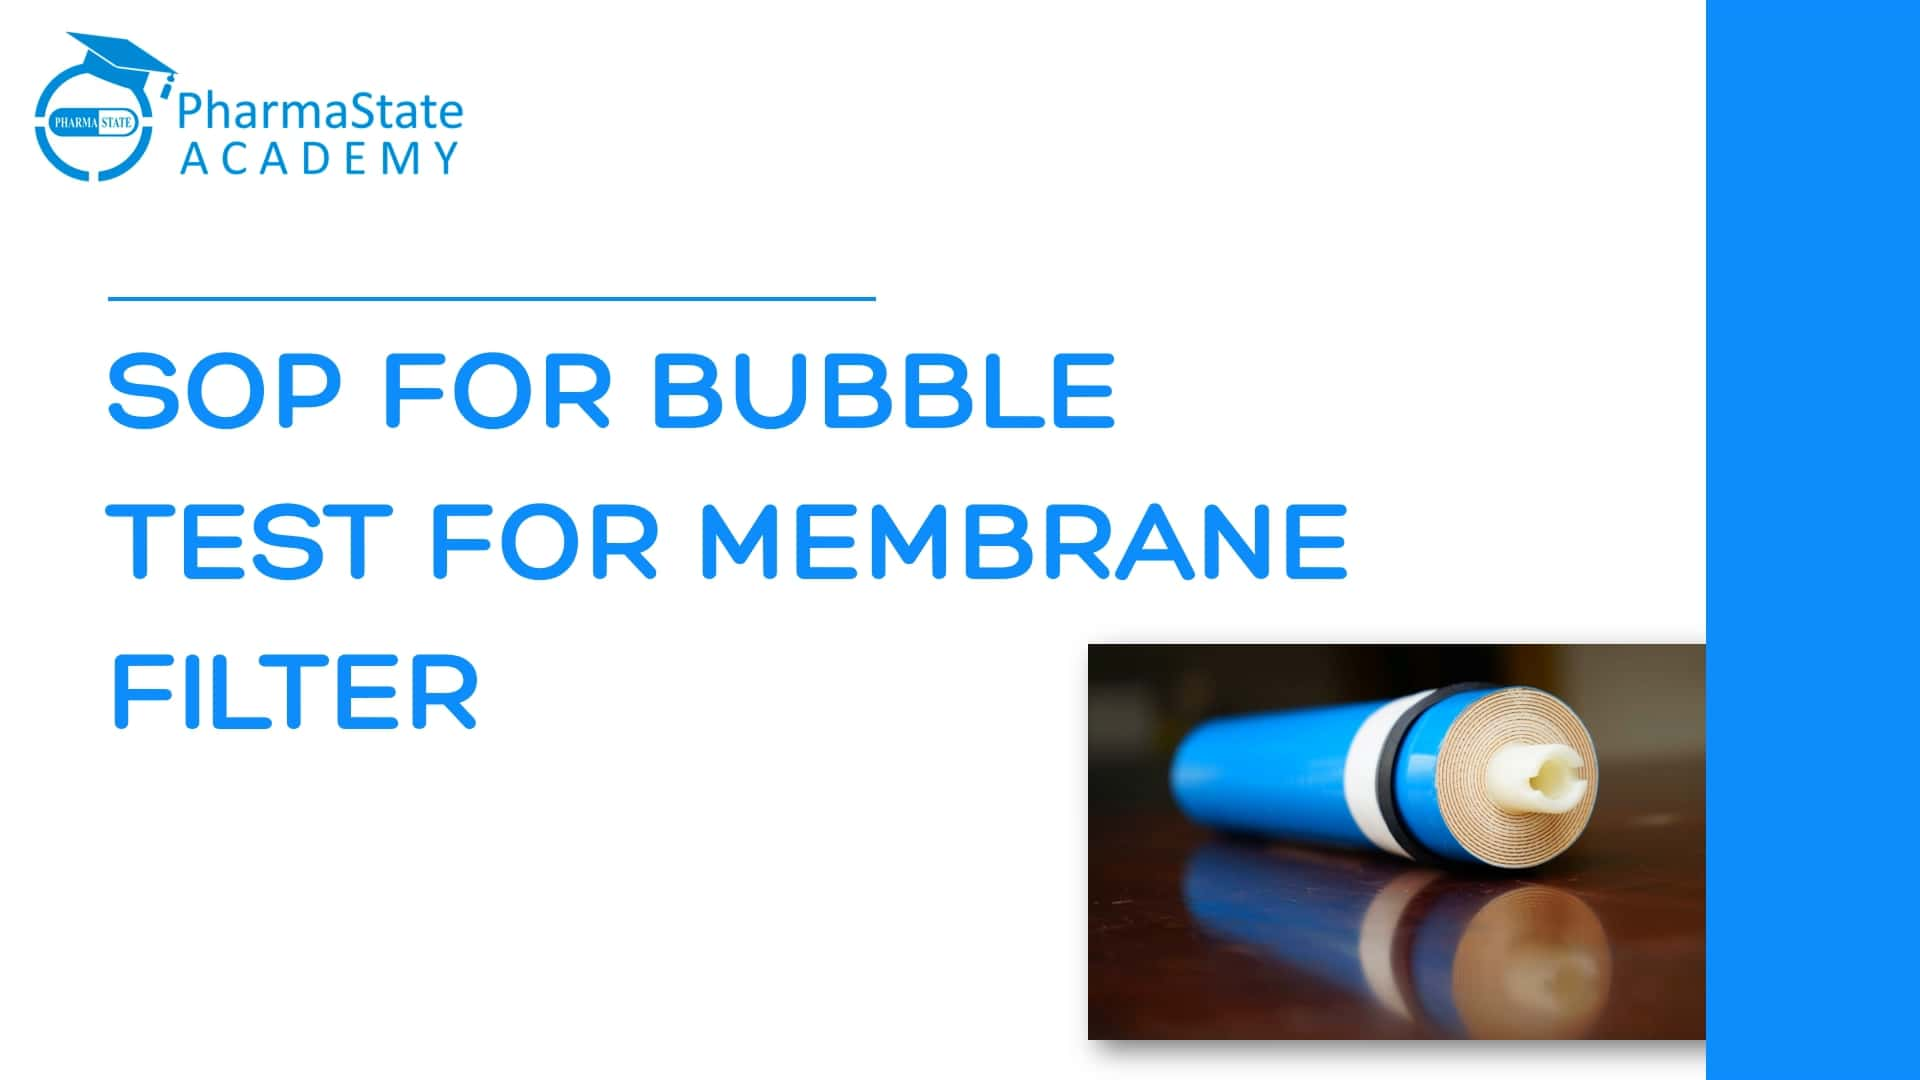 SOP FOR BUBBLE TEST FOR MEMBRANE FILTER